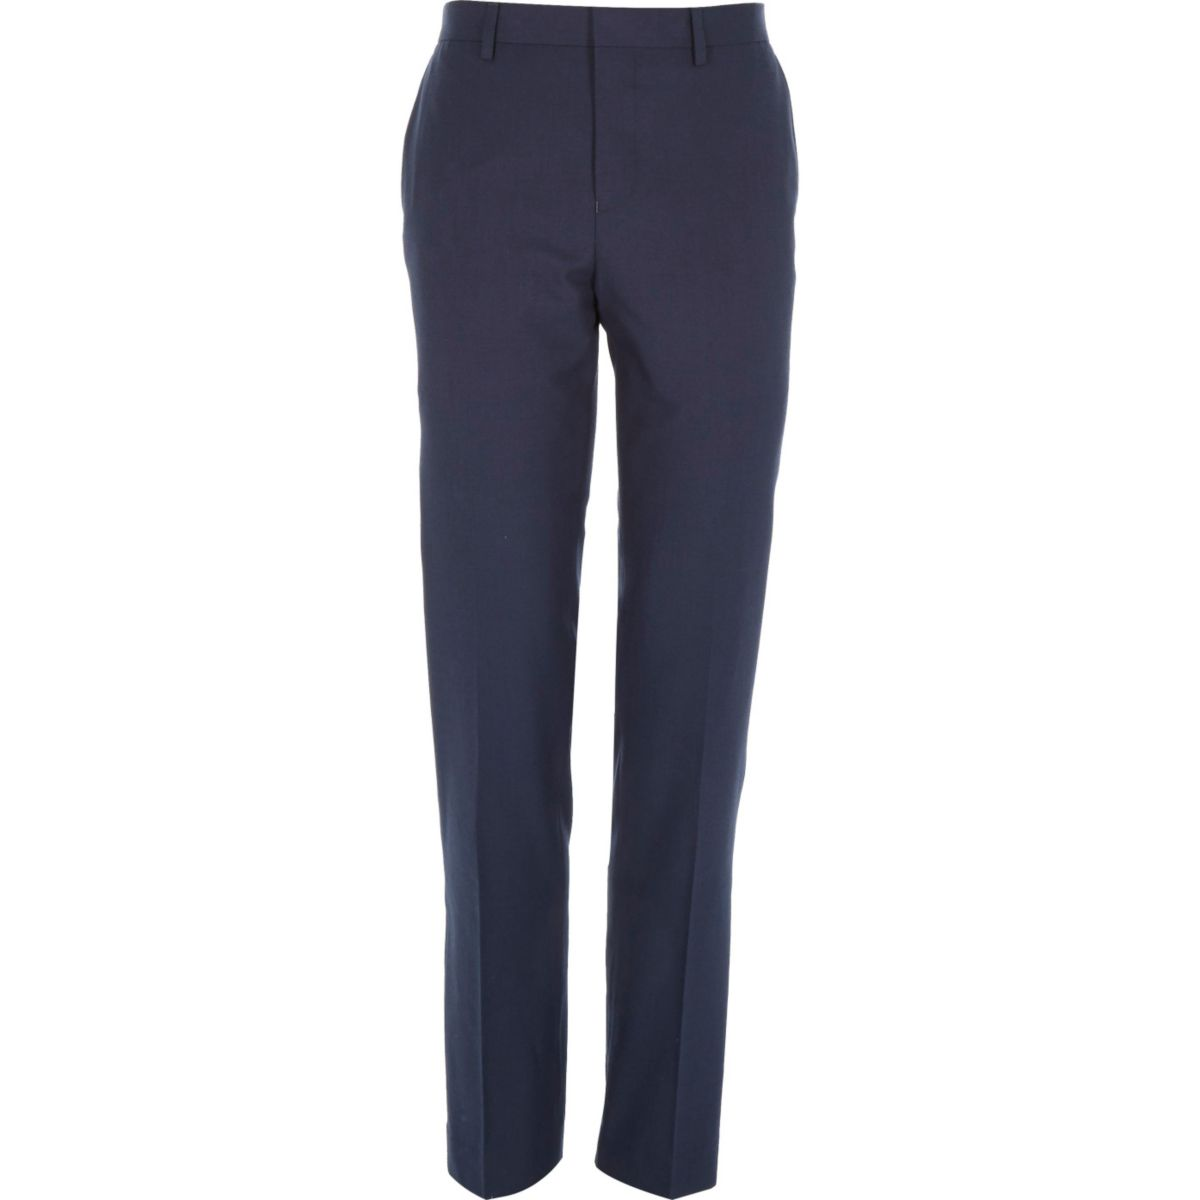 Dark blue slim suit pants